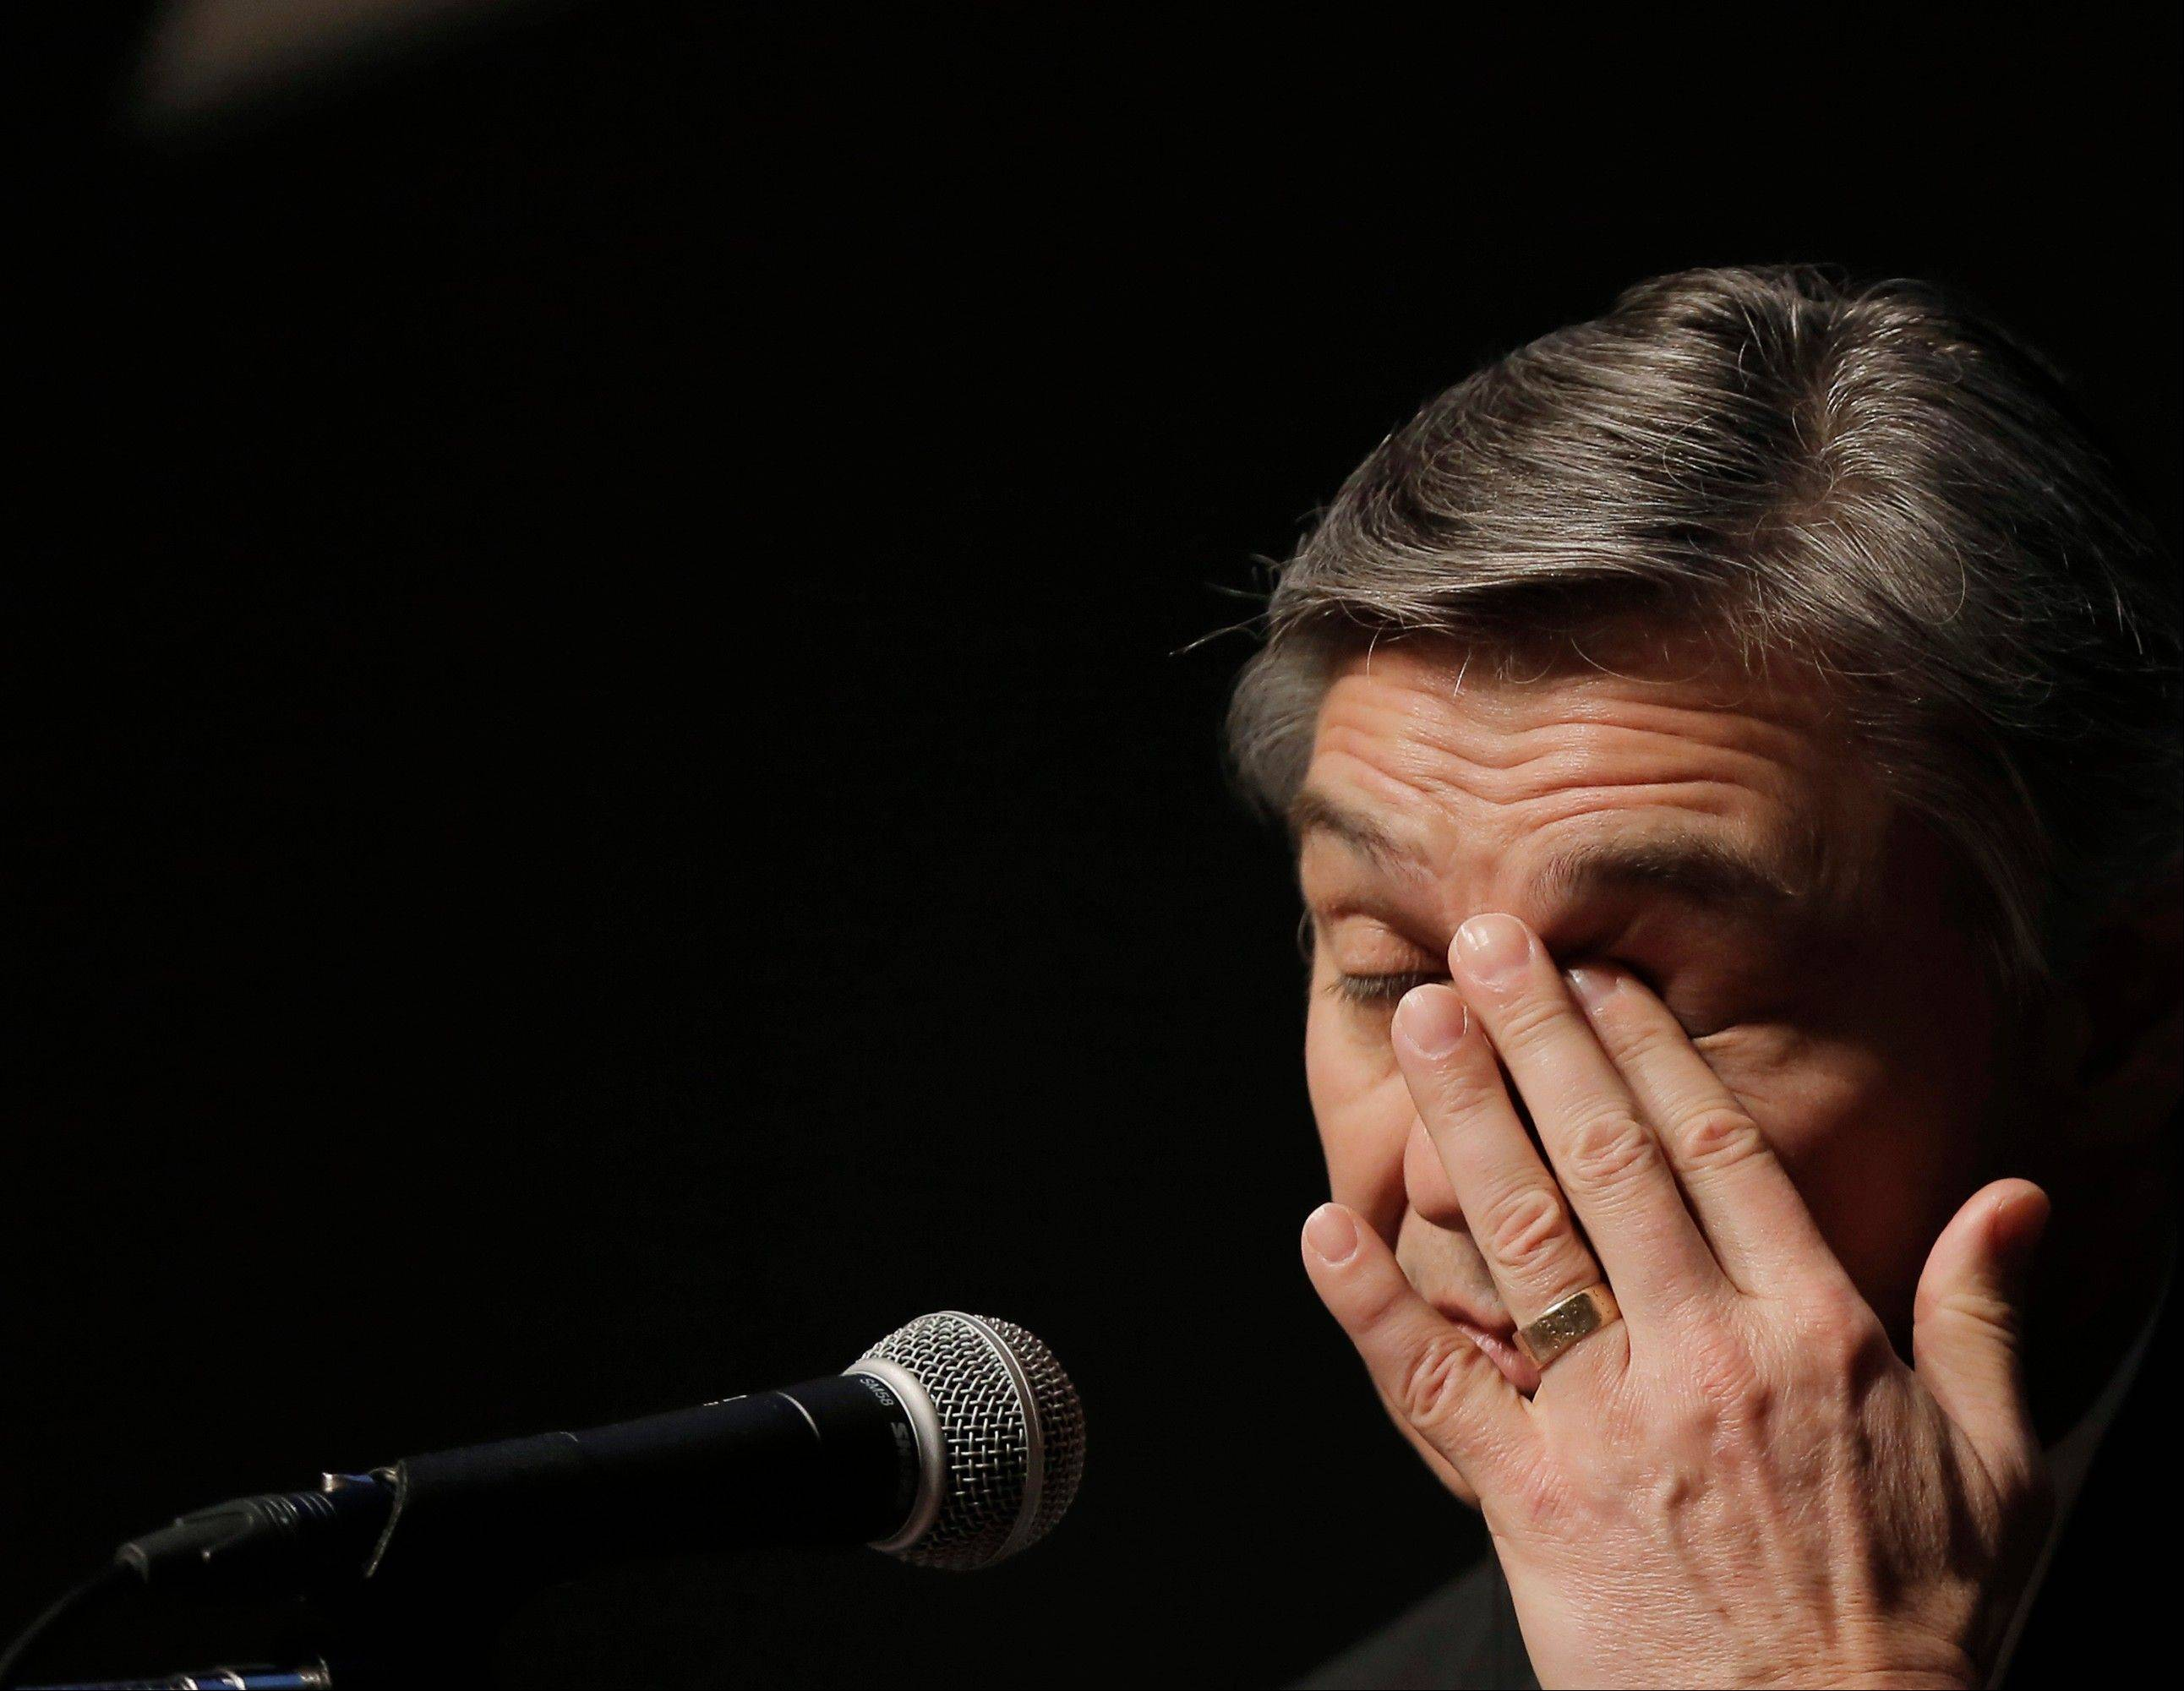 Boeing Commercial Airplanes President and CEO Ray Conner rubs his eye Friday during a news conference in Tokyo.